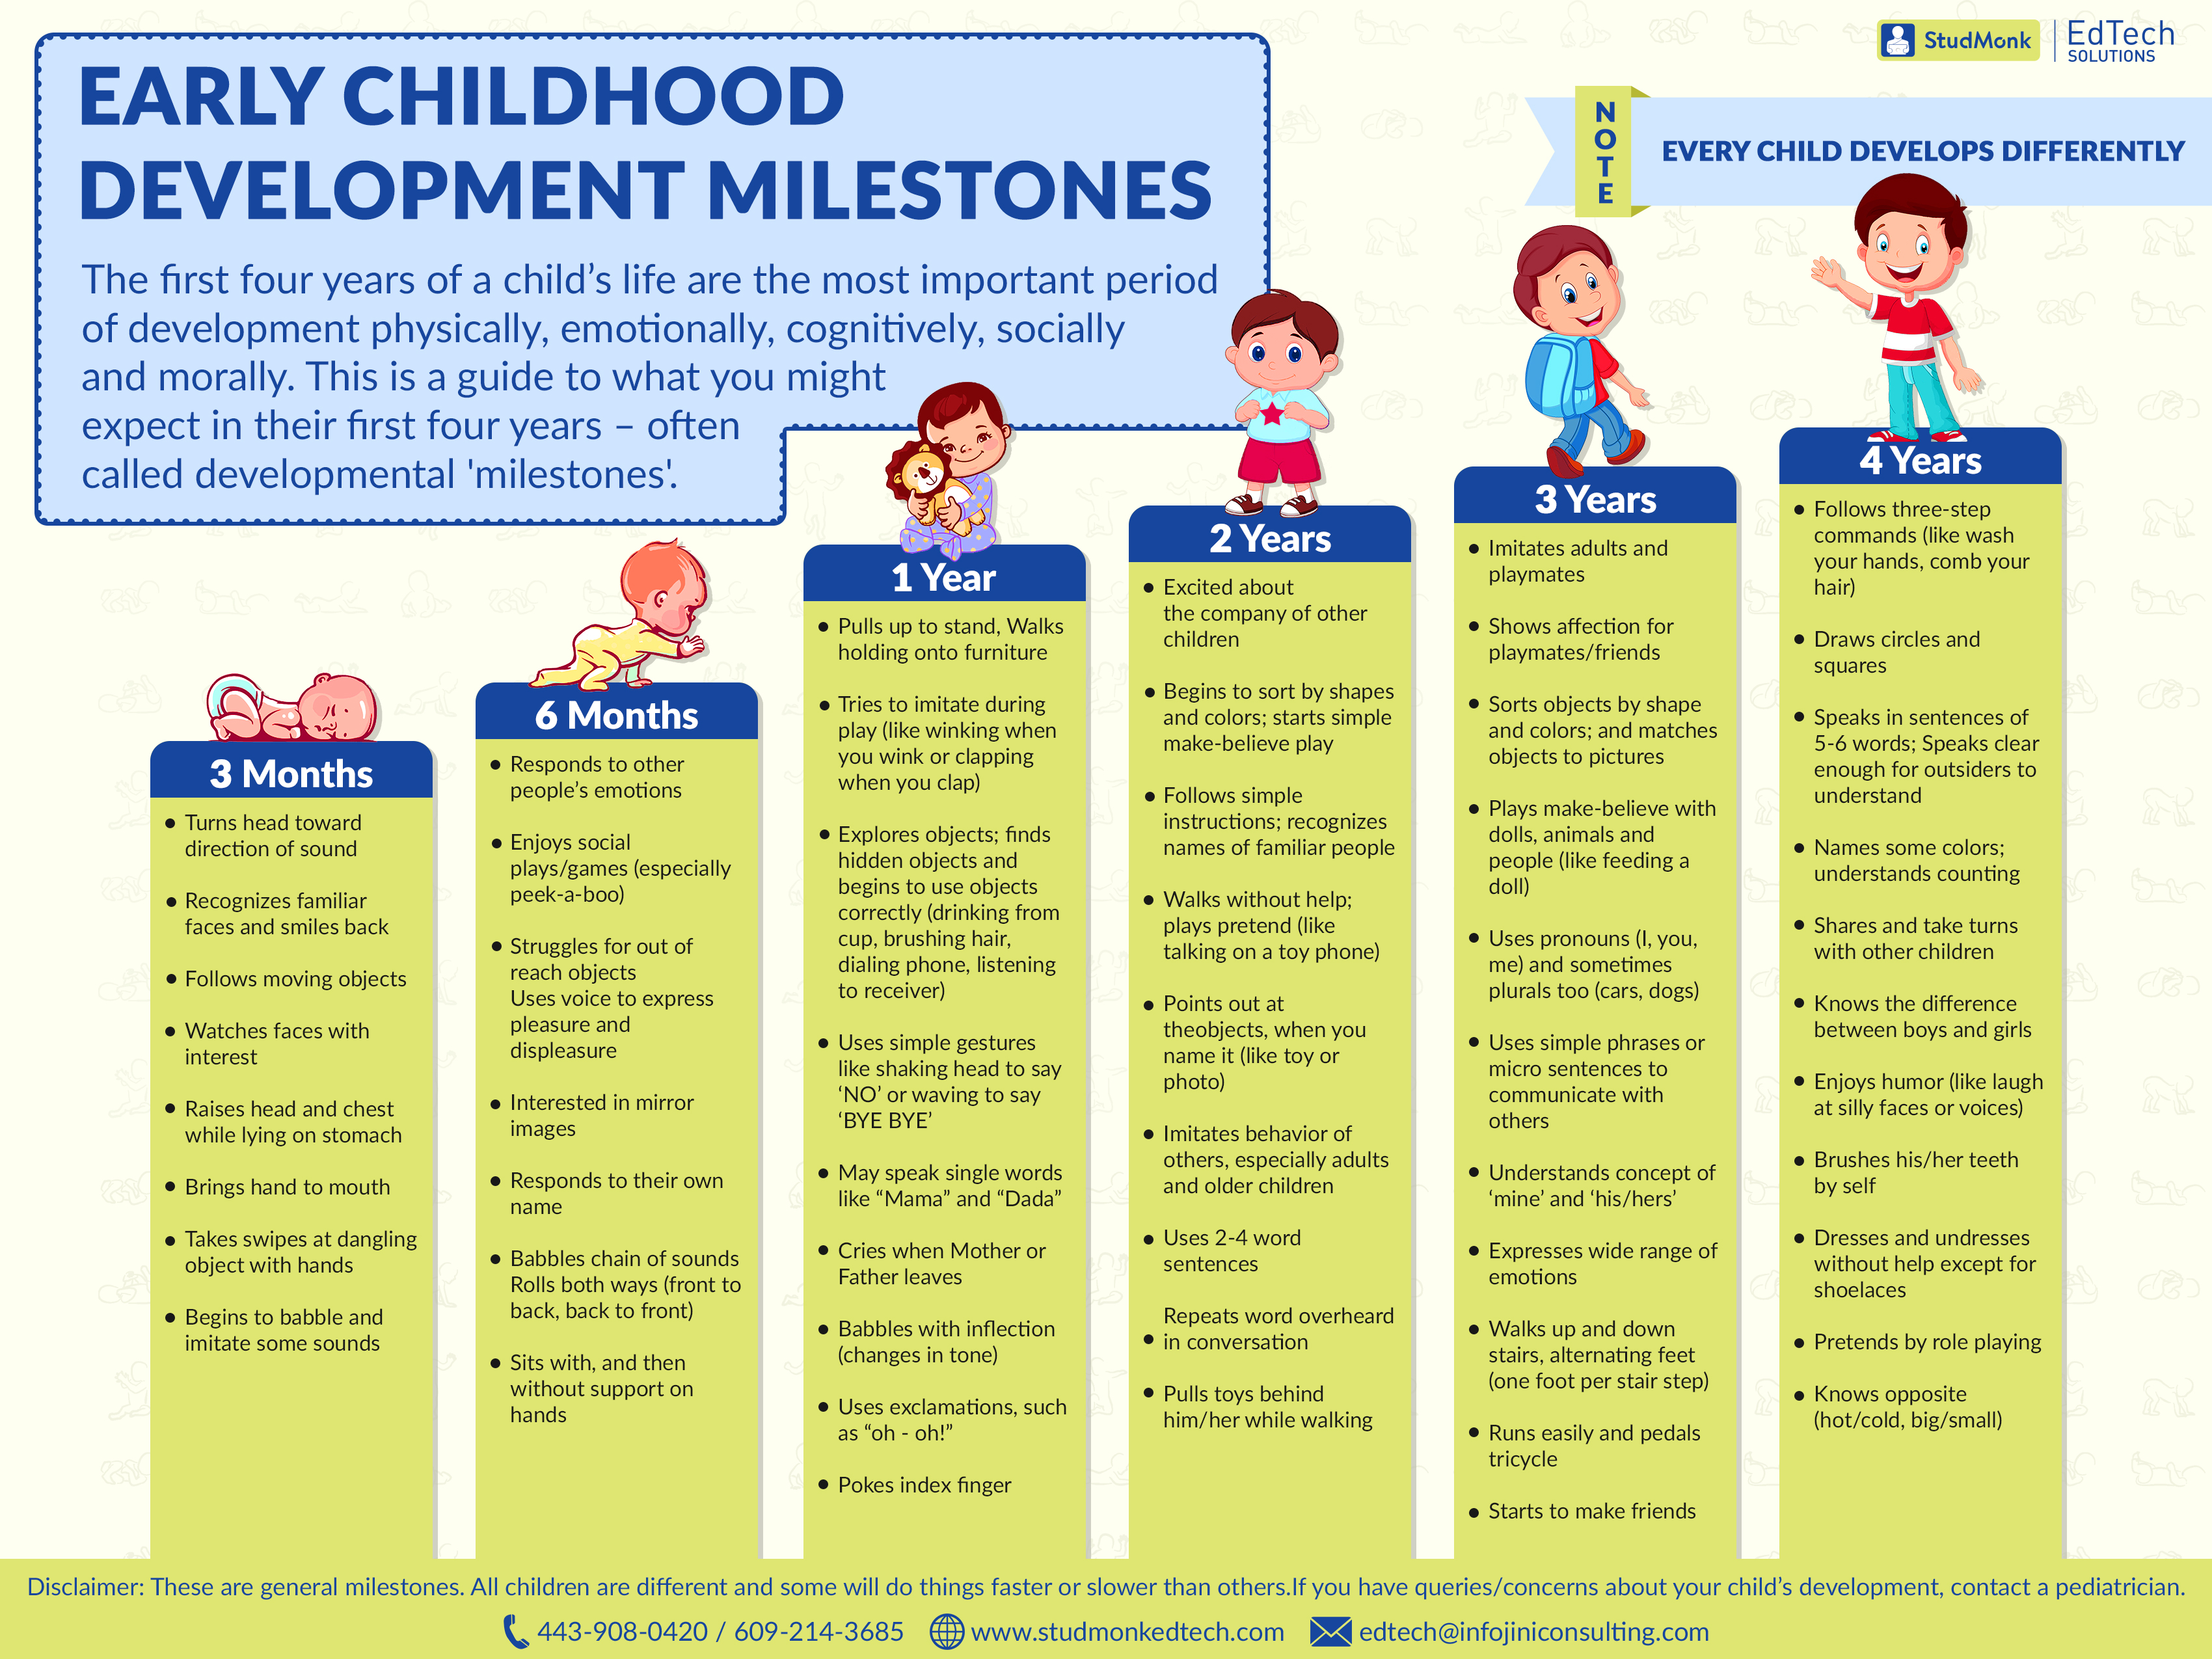 Get the early childhood developmental checklist here!